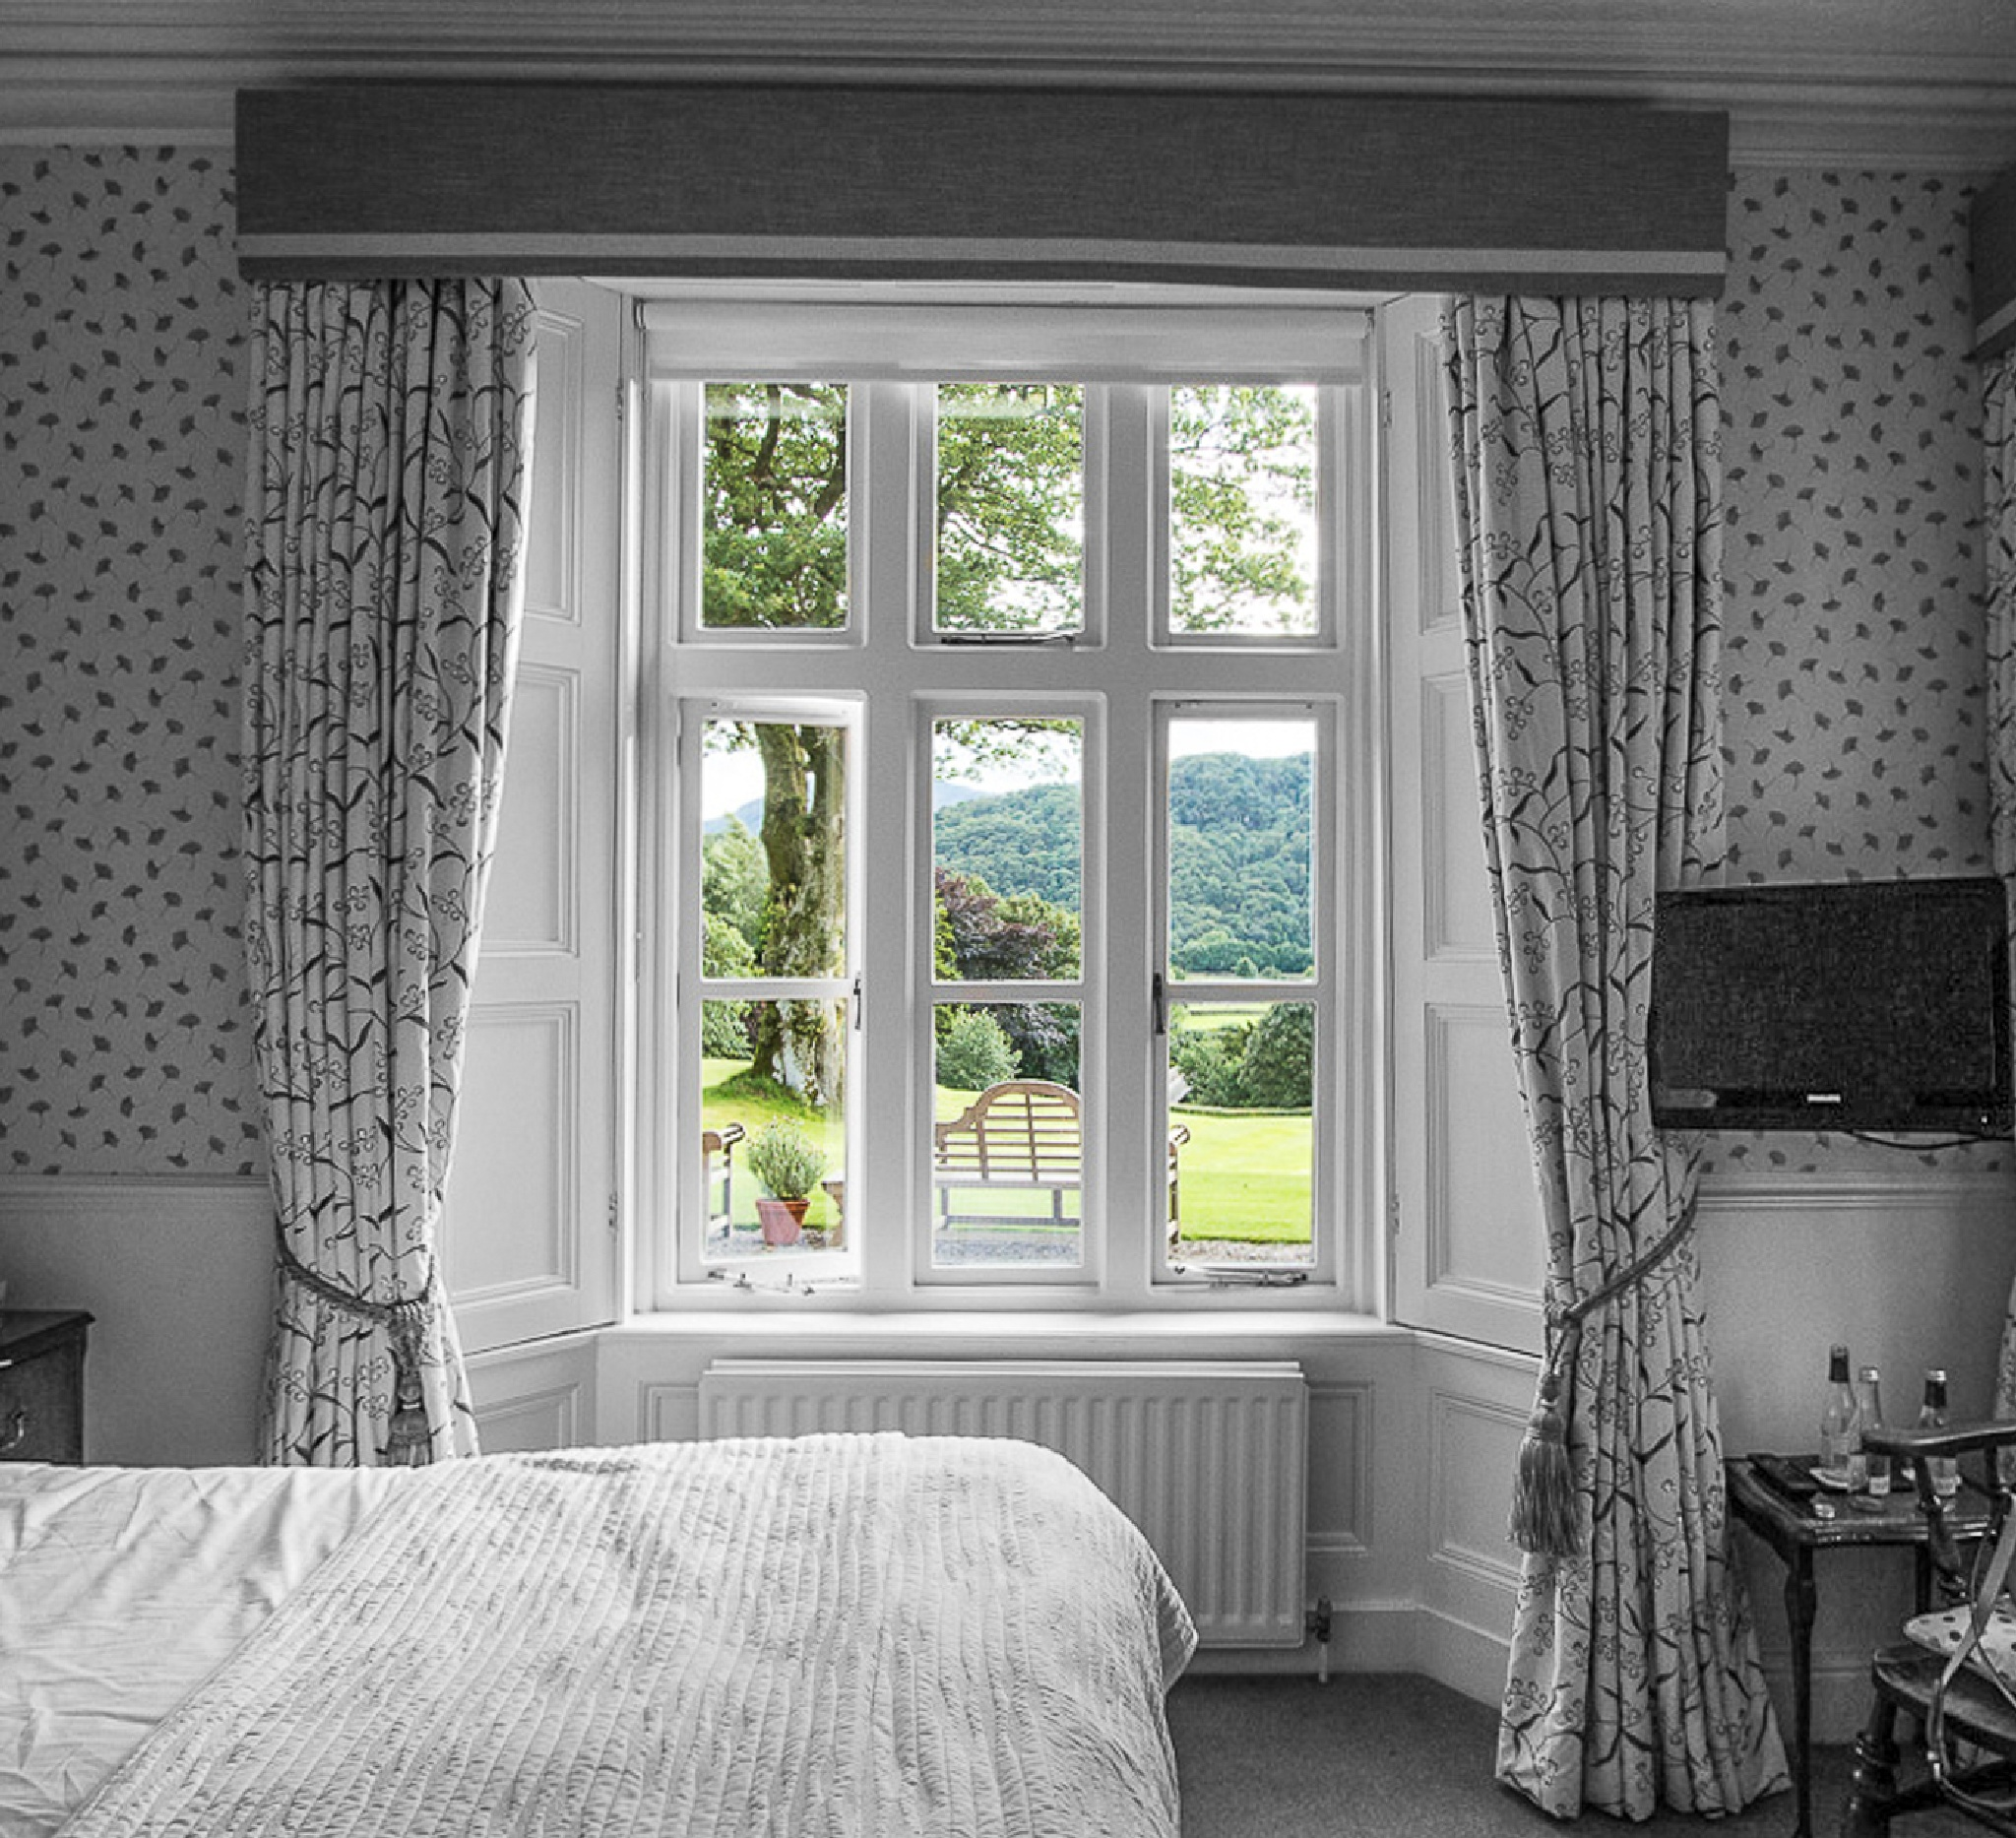 Room With A View by Chris Wood